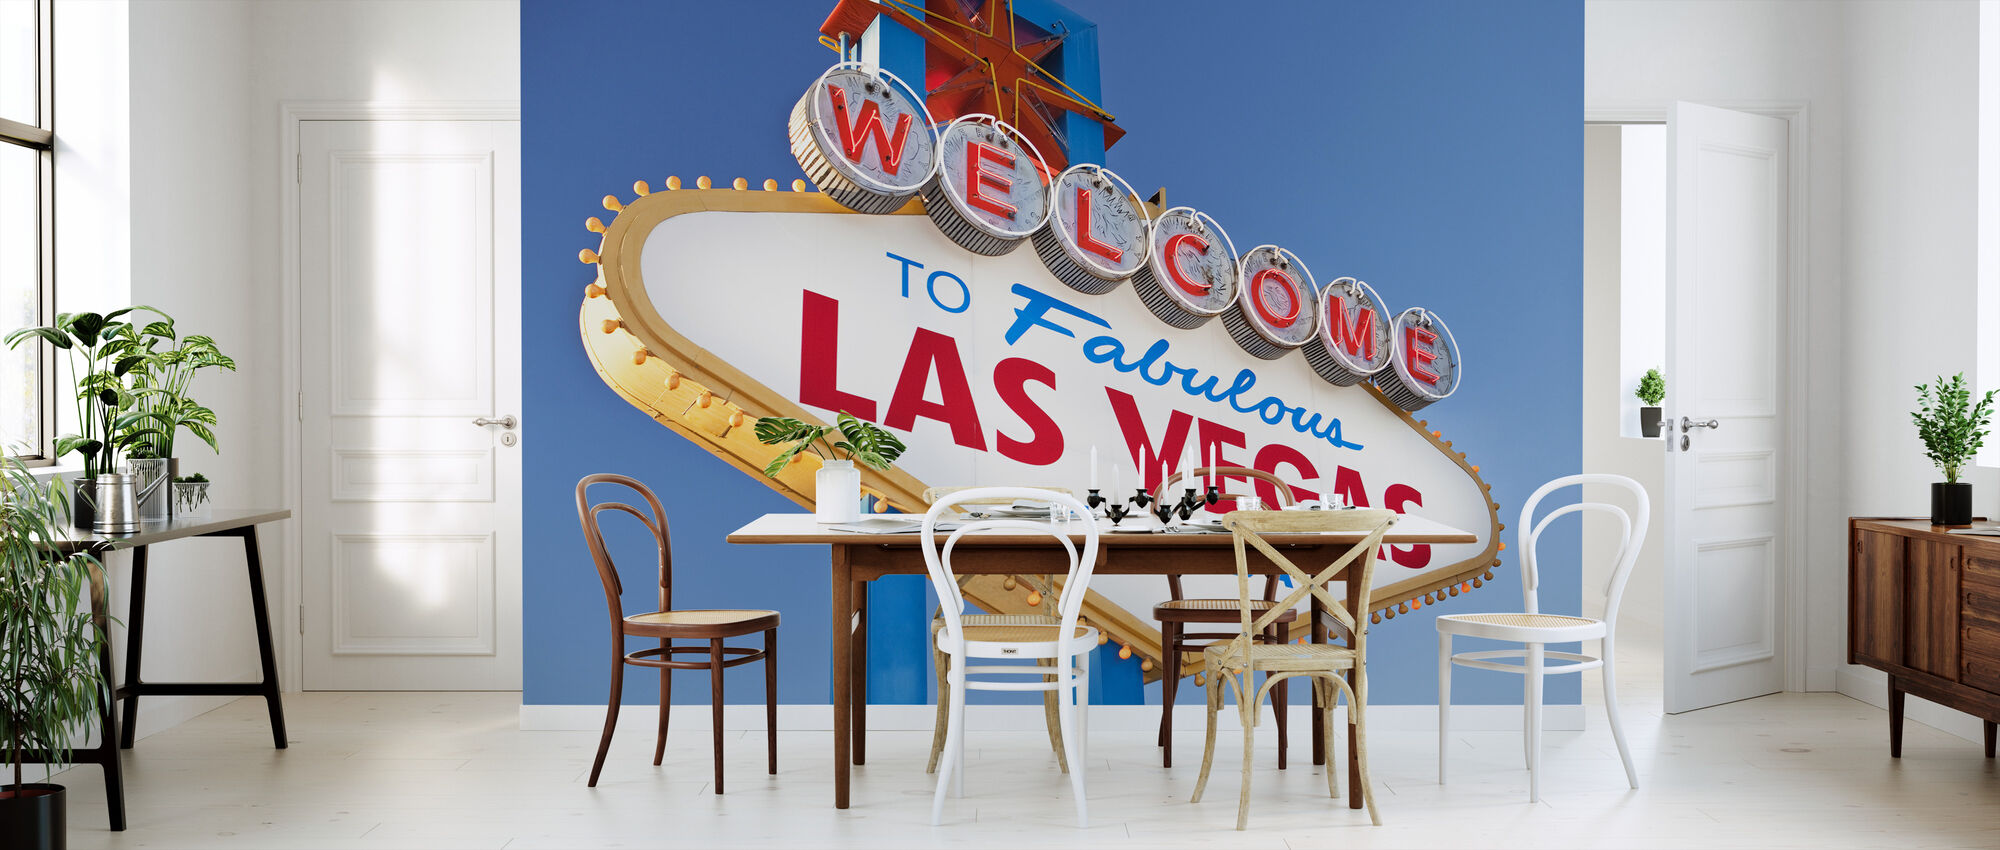 Welcome Sign to Las Vegas - Wallpaper - Kitchen